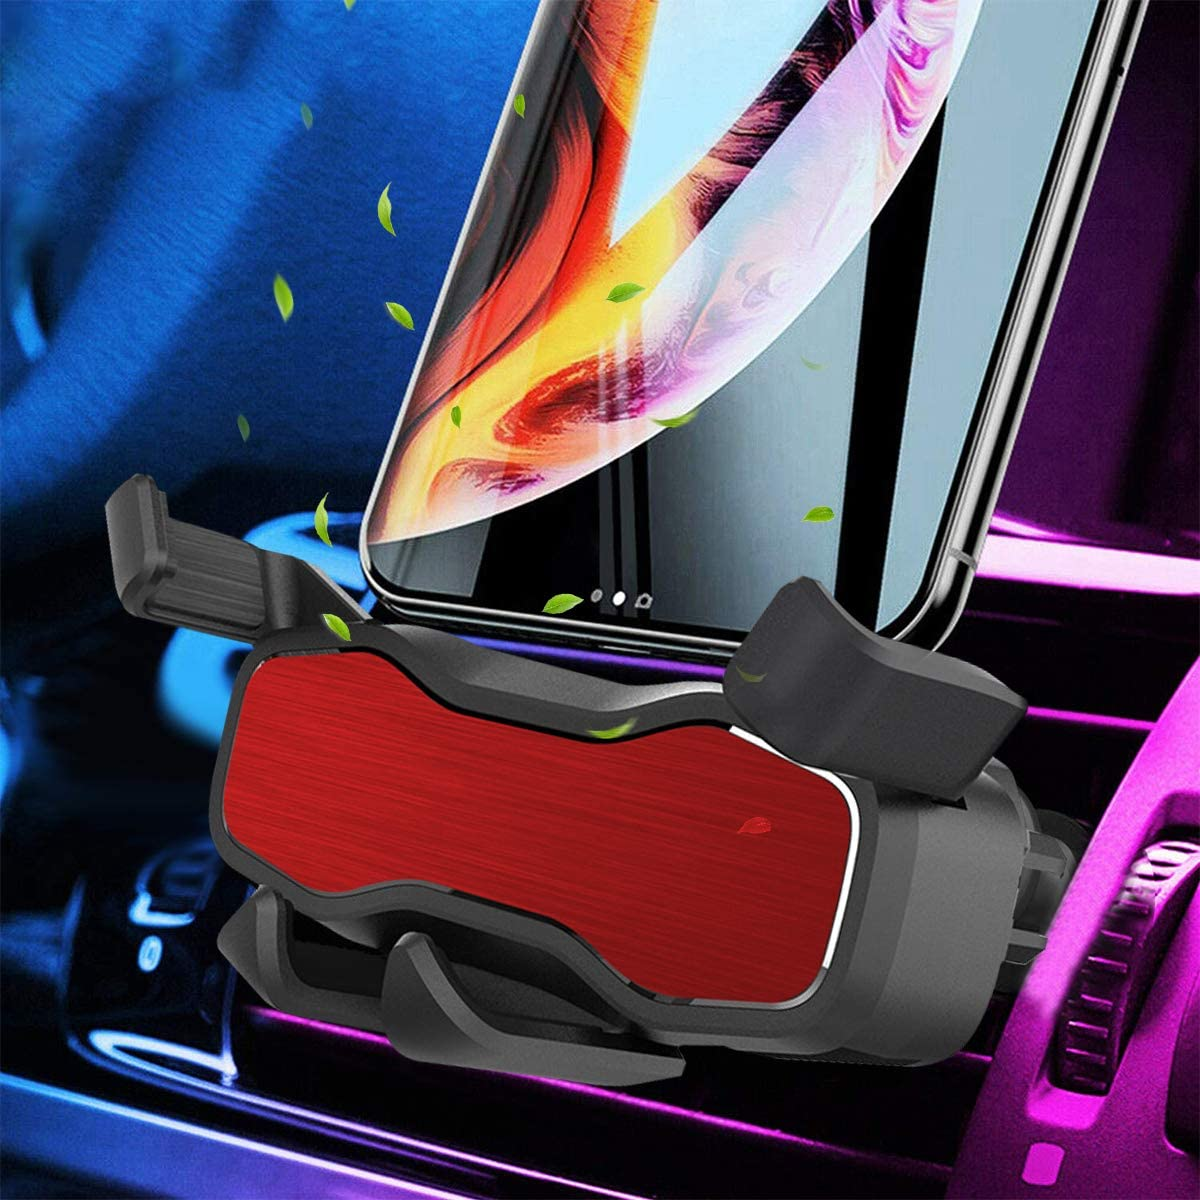 Handsfree Gravity Phone Holder for Car Air Vent Car Phone Mount Auto-Clamping Car Phone Holder for iPhone Xs Max Xr Samsung Galaxy S10 Plus S10e Google Pixel 3a and All Smartphone(Red)